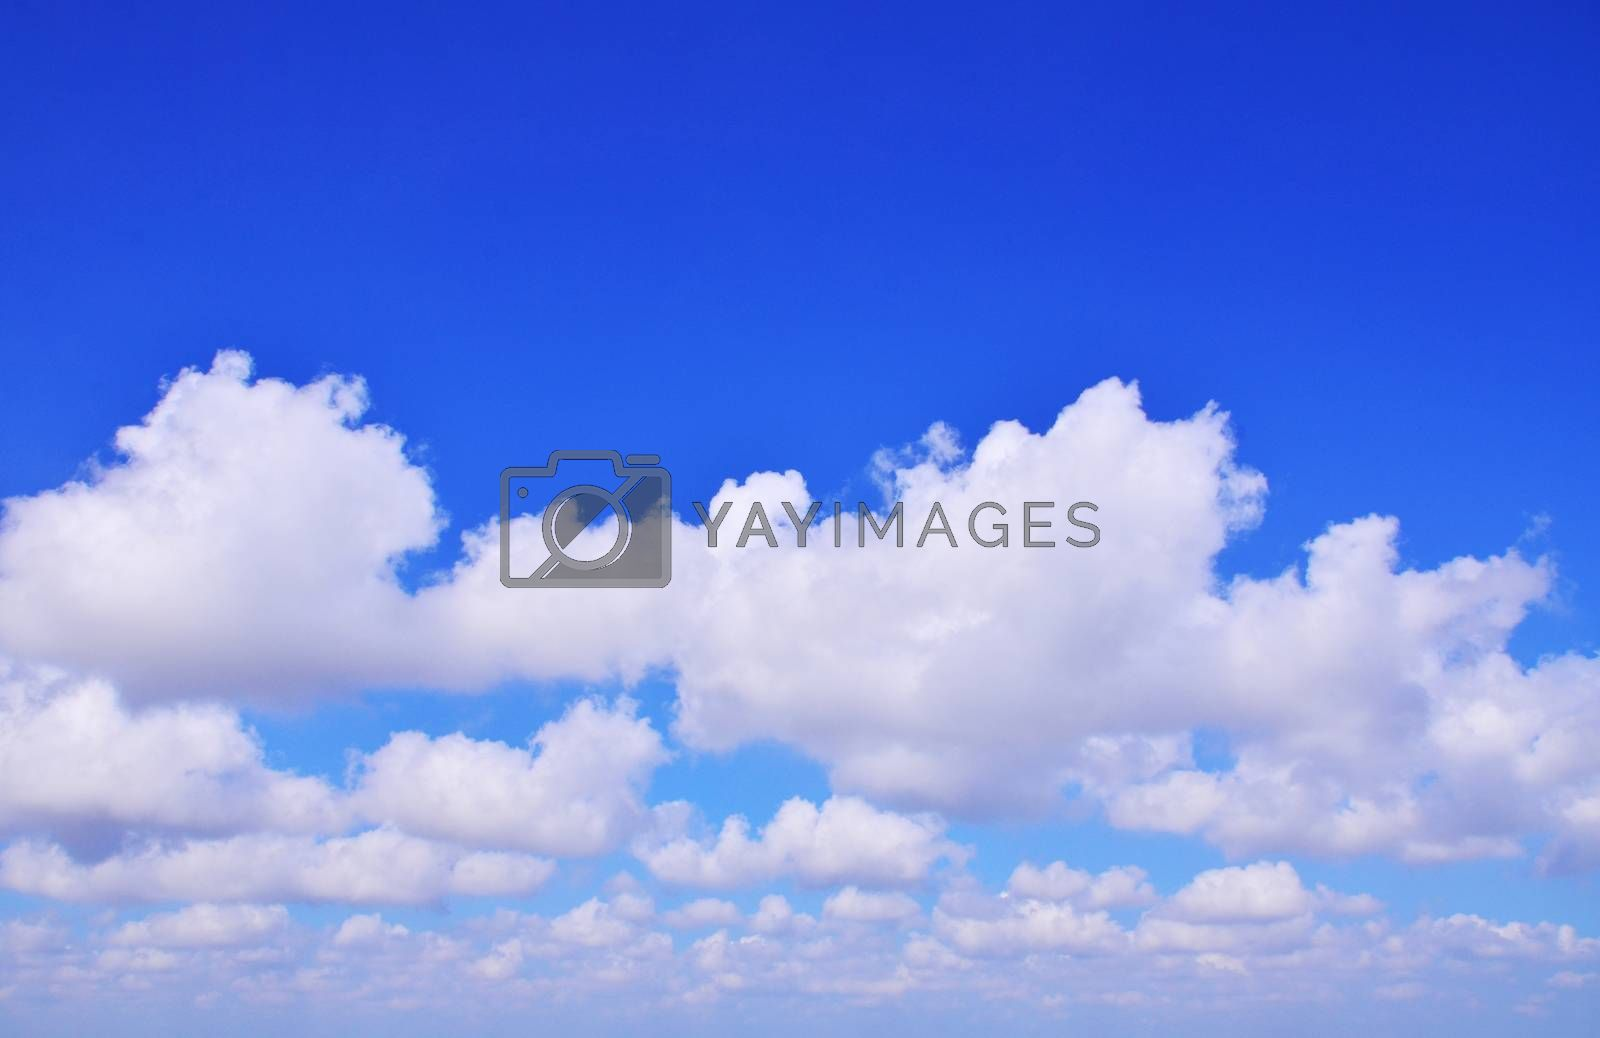 The vast blue sky with clouds